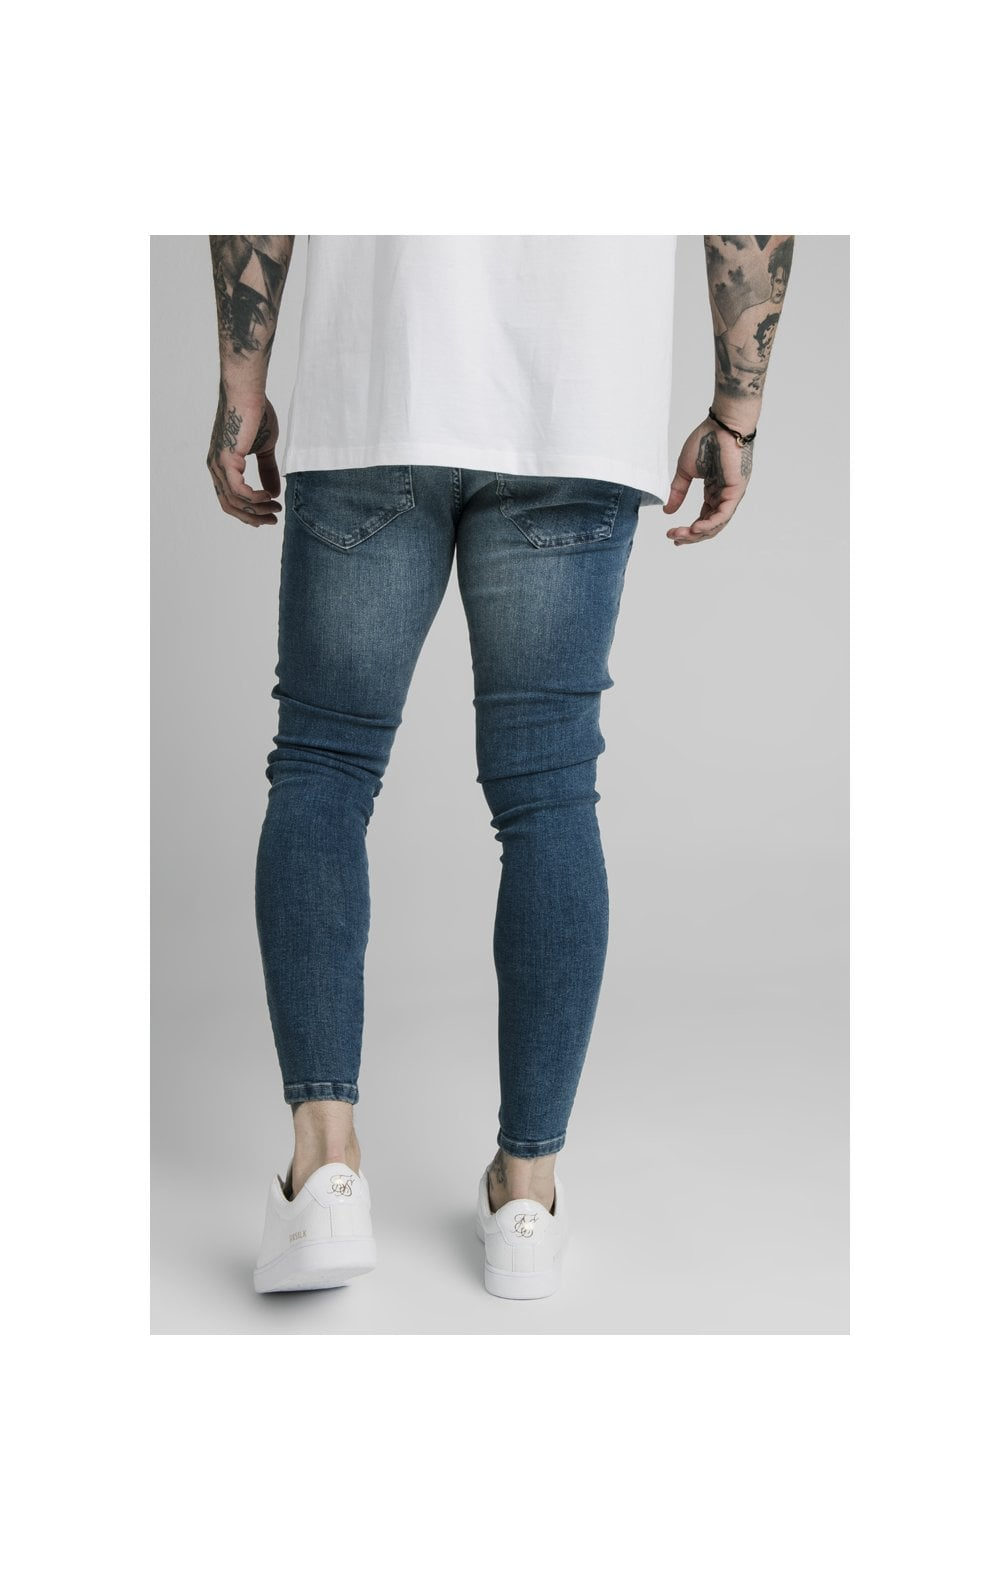 SikSilk Skinny Denim – Midstone (5)